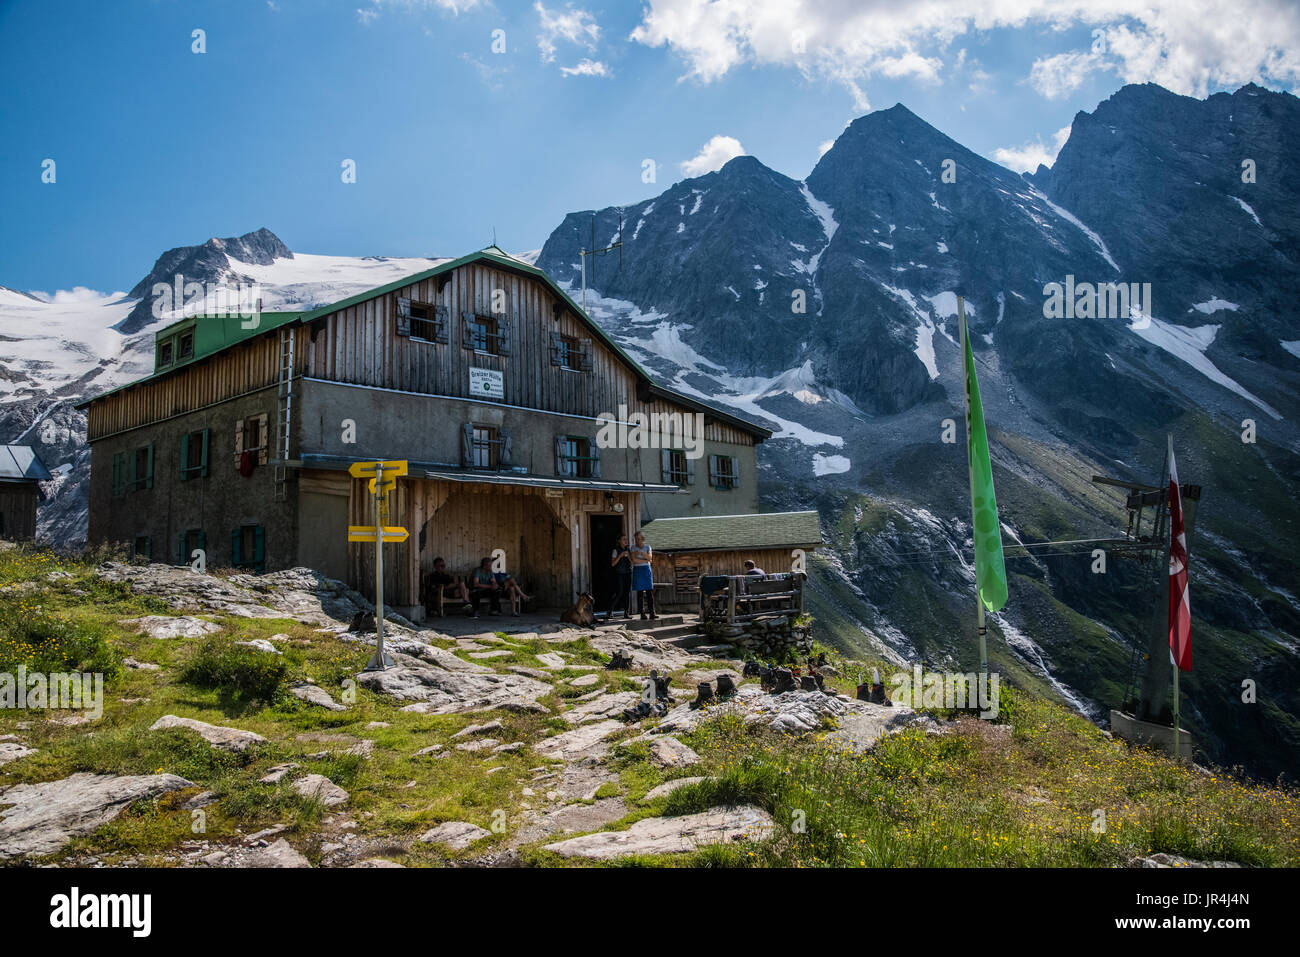 Trekking in the Zillertal seen here with the Greizer Hut mountain refuge Stock Photo